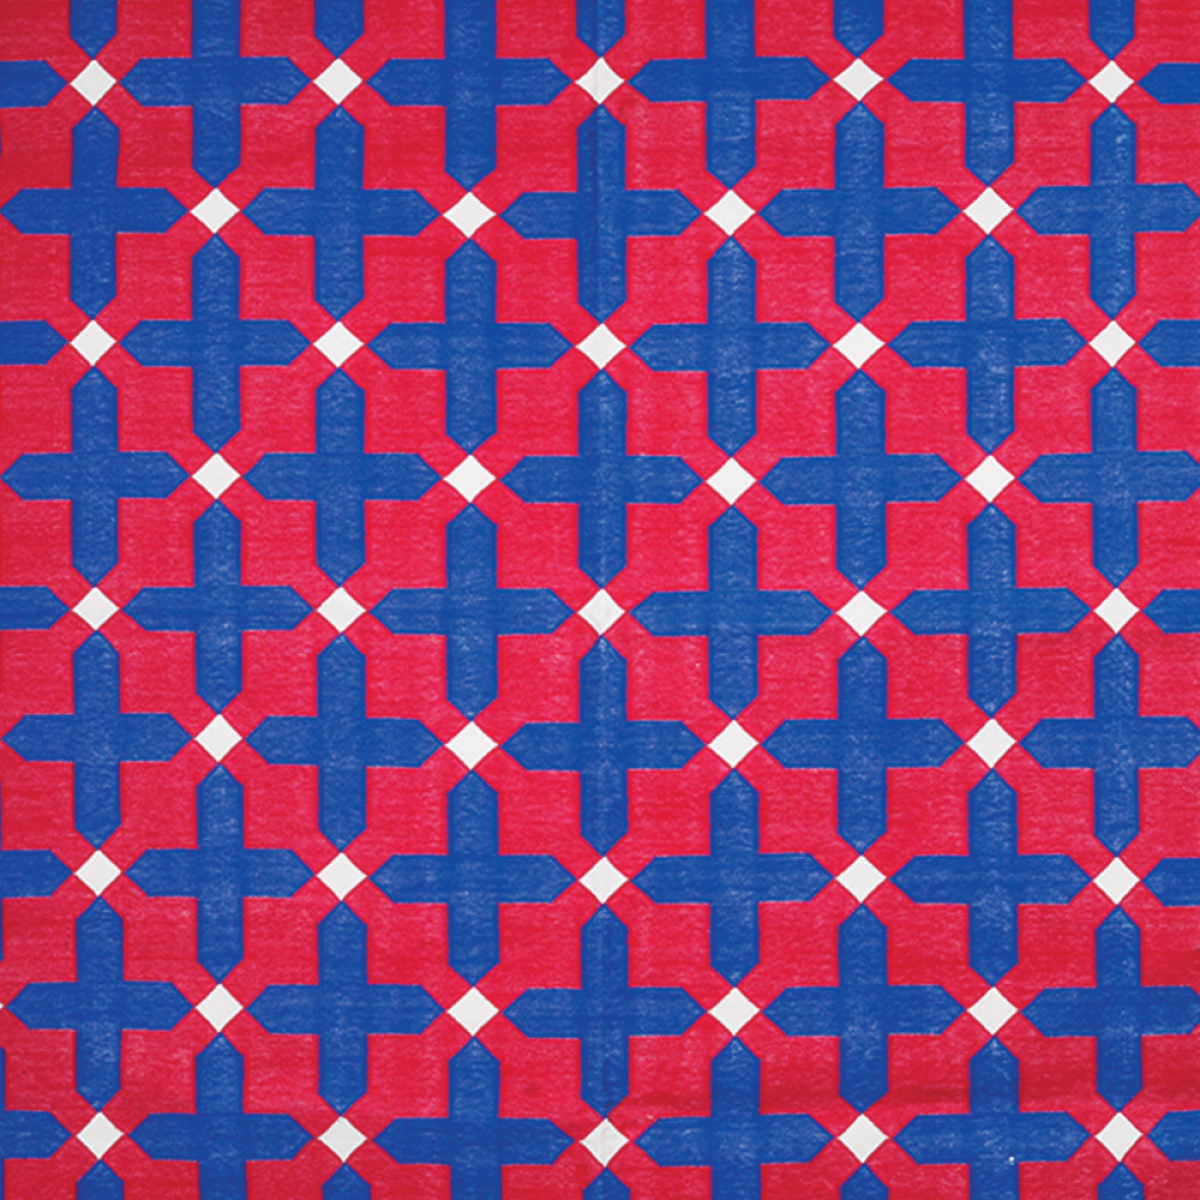 Area Rugs - Navy Blue & Red